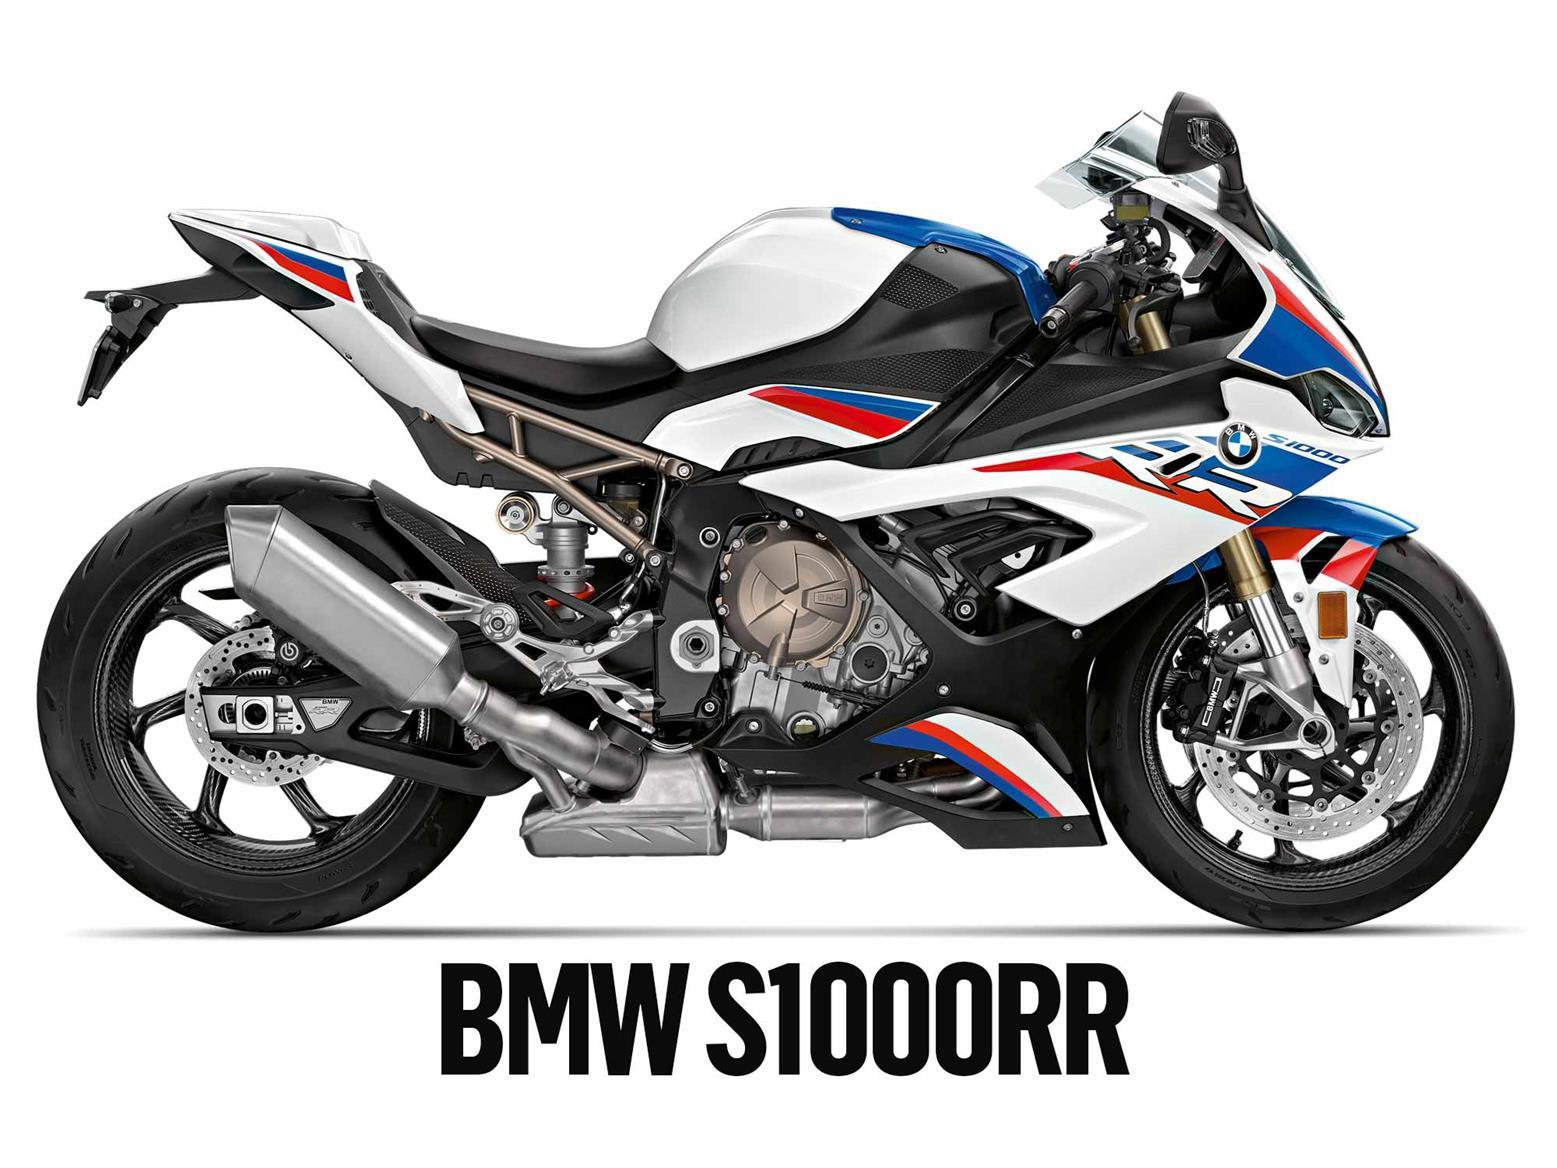 Read MCN's detailed BMW S1000RR long-term test review here